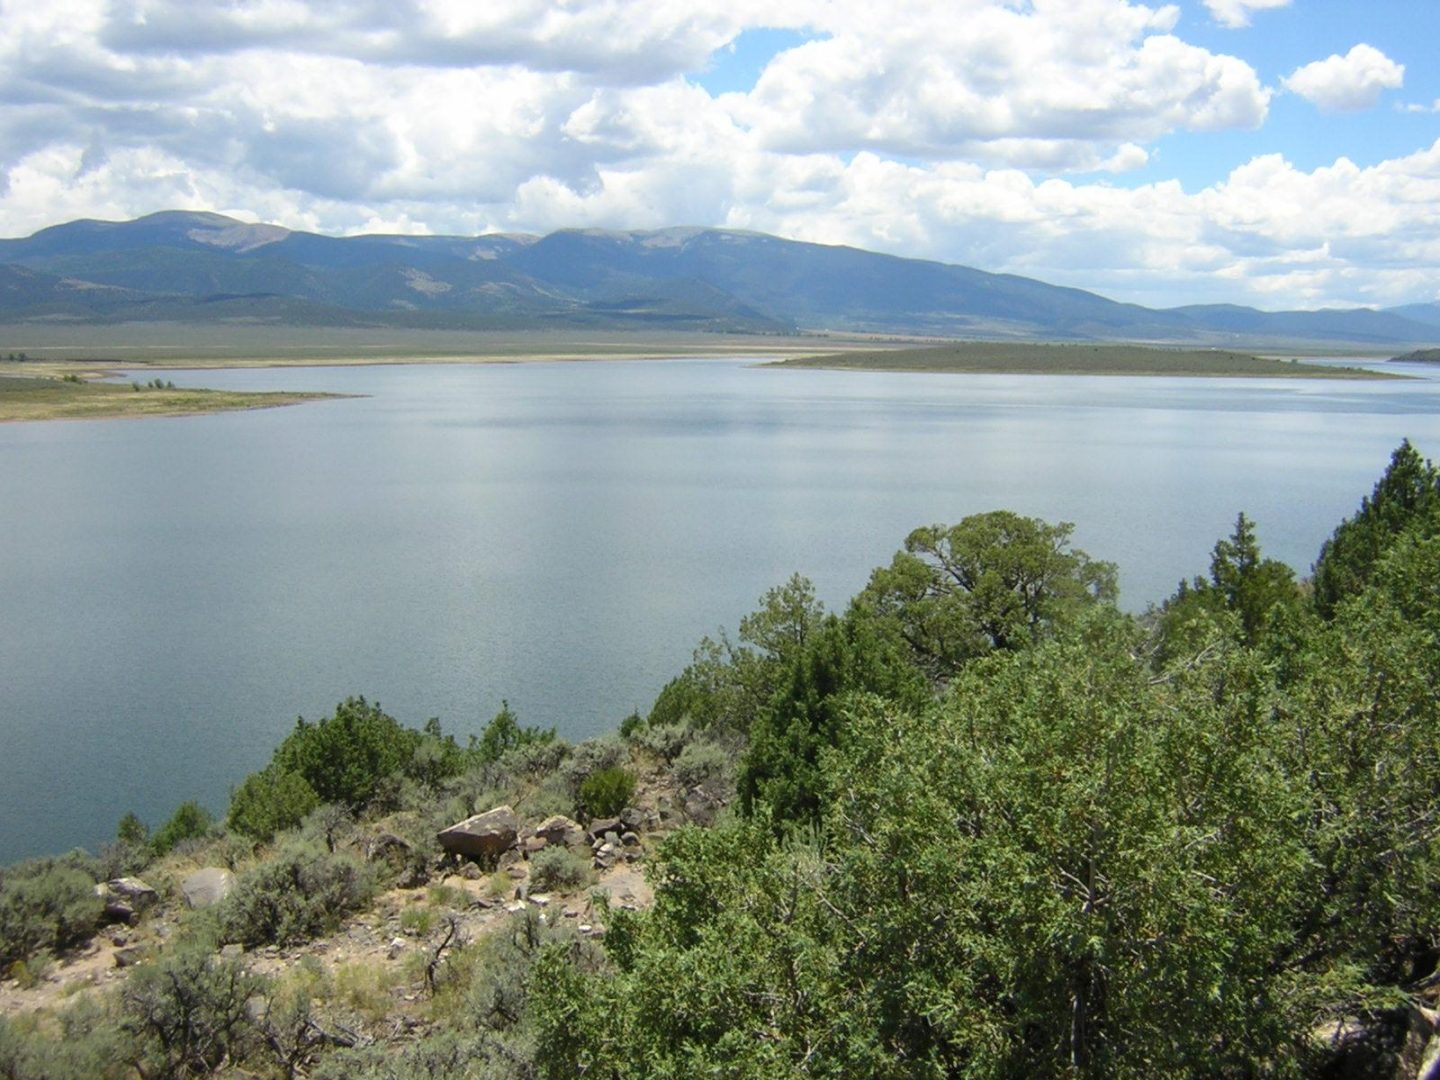 Wild Horse Mesa, Lake Sanchez, island, mountain view, southeast